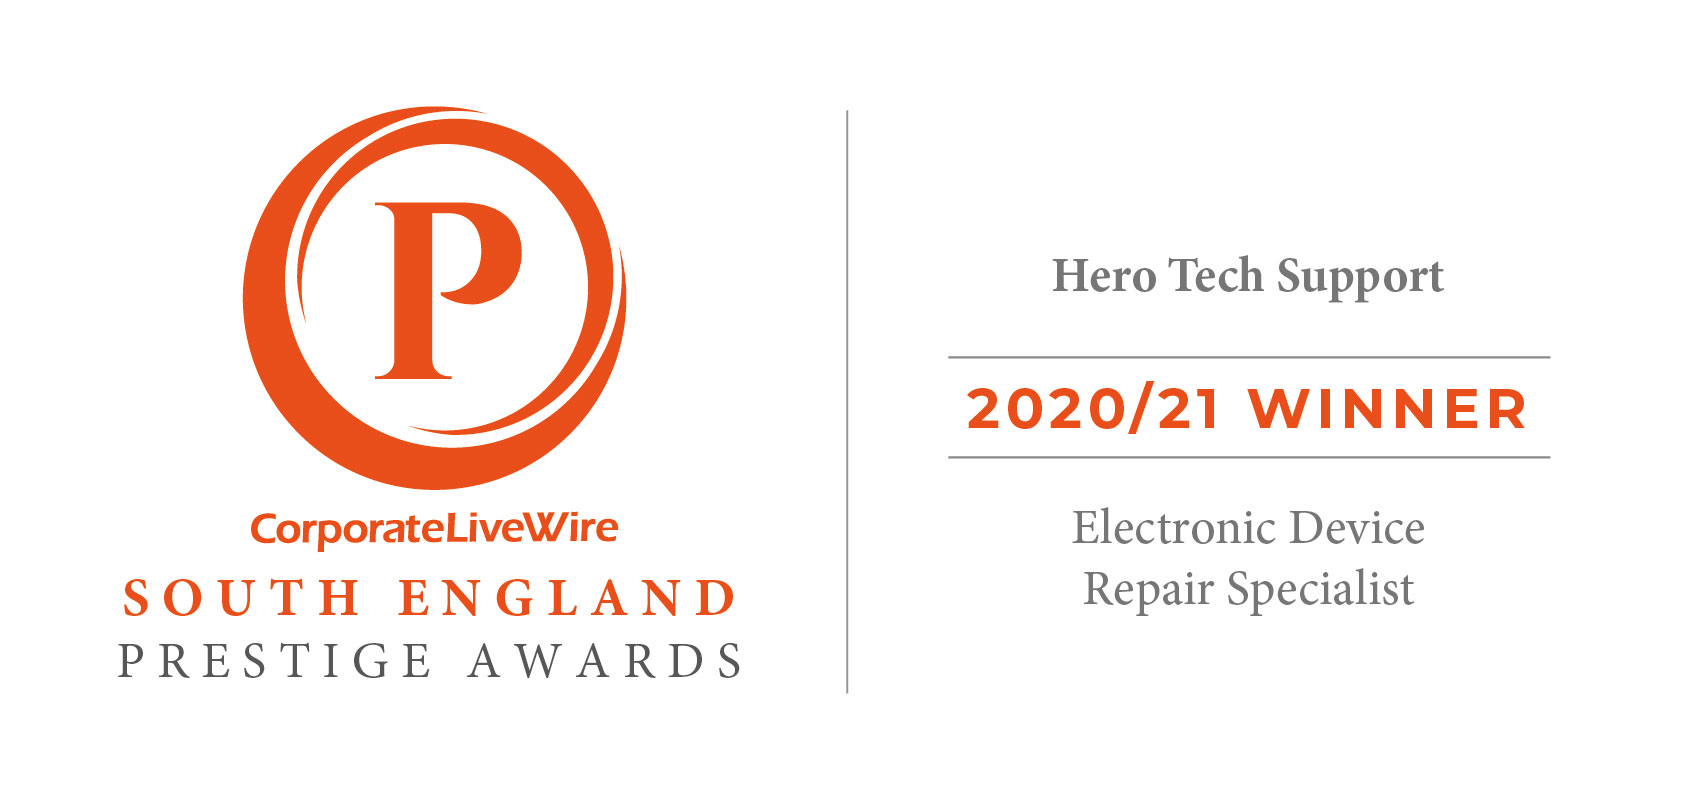 Electronic Device Repair Specialist